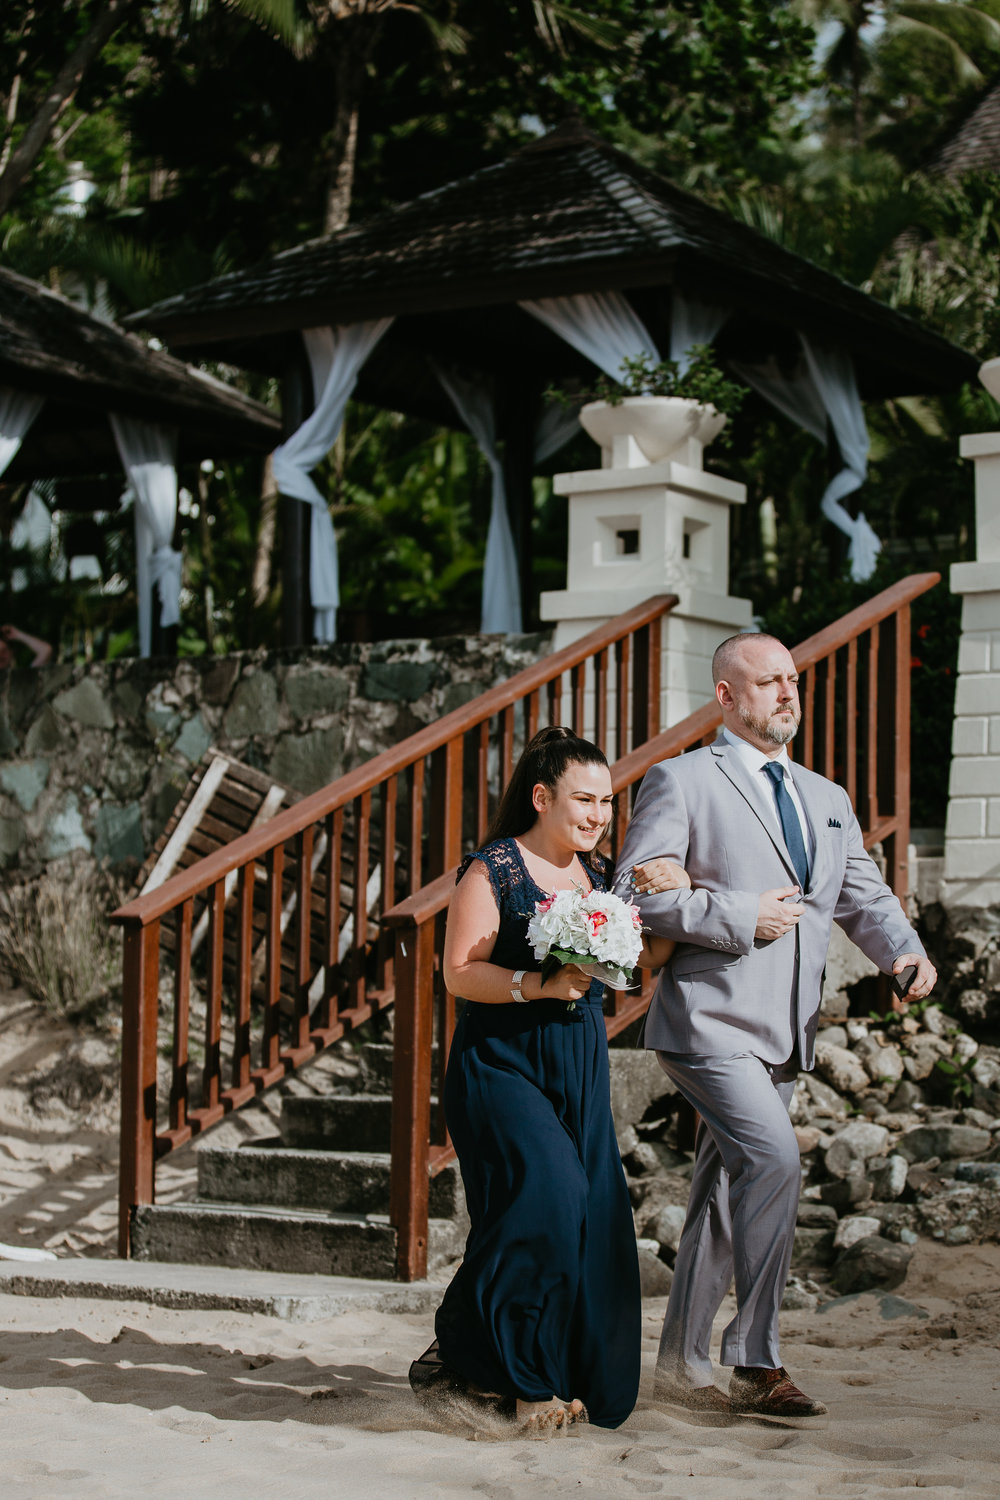 nicole-daacke-photography-destination-wedding-in-st-lucia-sandals-la-toc-intimate-island-wedding-carribean-elopement-photographer-chill-island-wedding-55.jpg